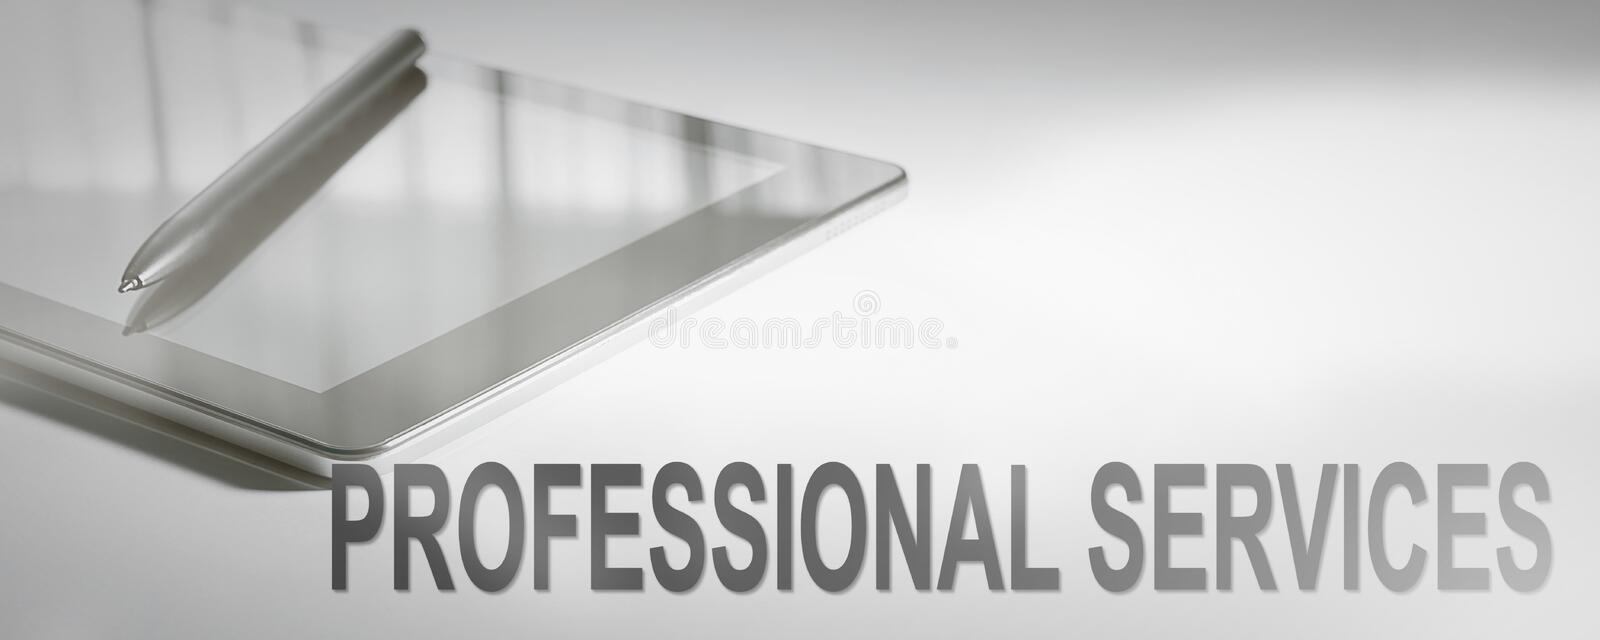 PROFESSIONAL SERVICES Business Concept Digital Technology. stock images